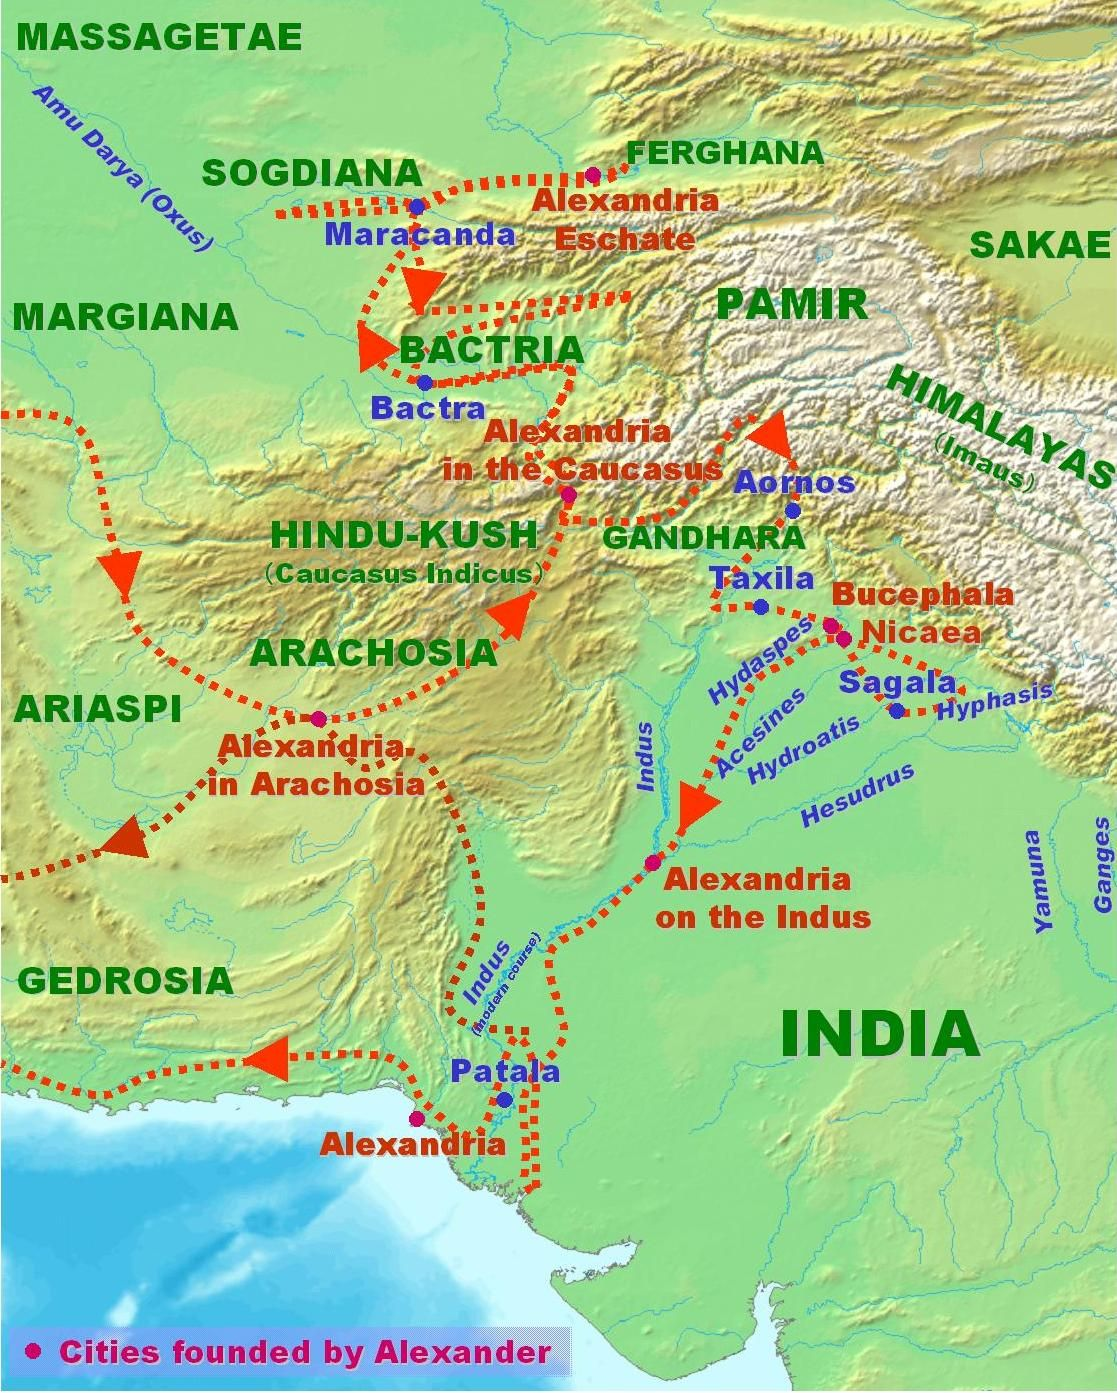 Map of alexander the greats india campaigns from 327 to 325 bc map of alexander the greats india campaigns from 327 to 325 bc the classical period is considered to have ended when alexander the great died in 323 bc gumiabroncs Gallery